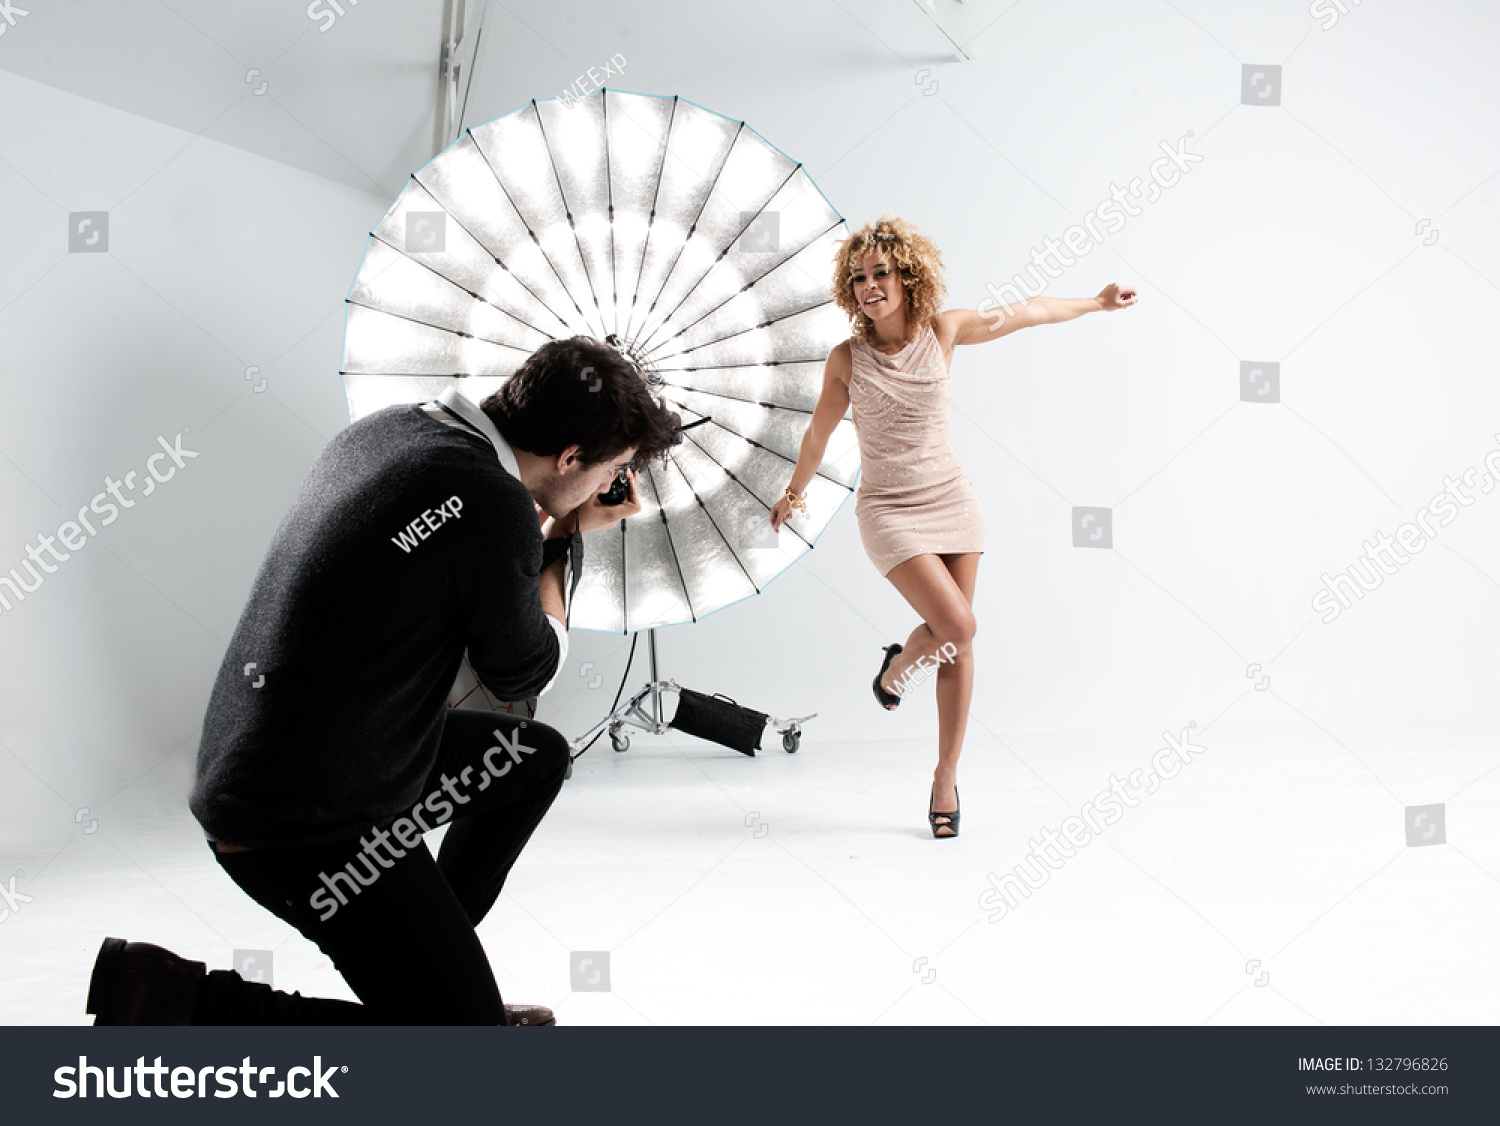 http://image.shutterstock.com/z/stock-photo-photographer-working-with-a-cute-model-in-a-professional-studio-132796826.jpg